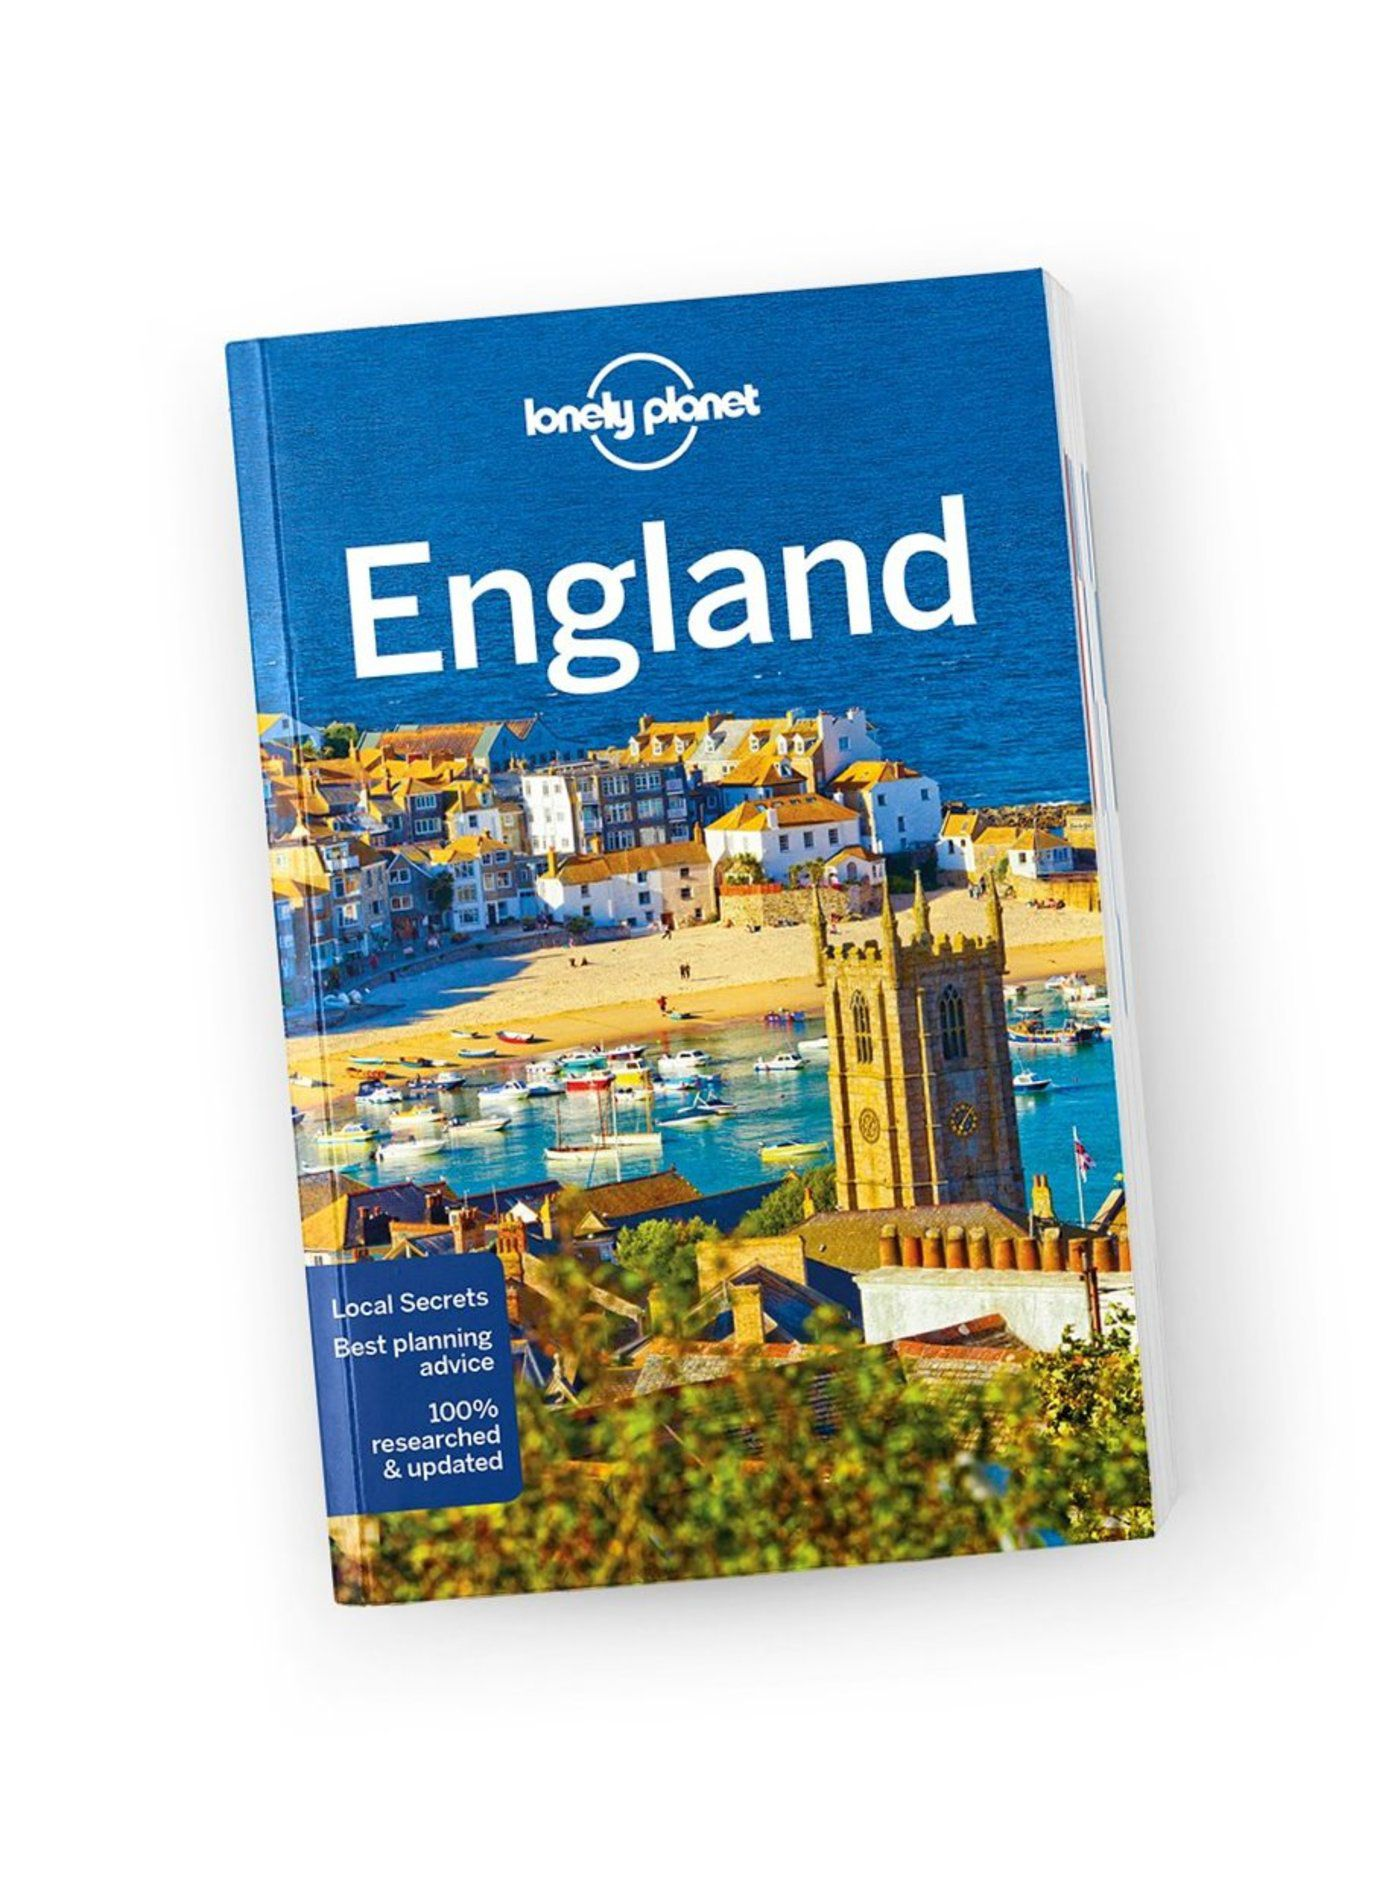 England - Plan your trip (PDF Chapter), 9th Edition Apr 2017 by Lonely Planet 9781786573391001